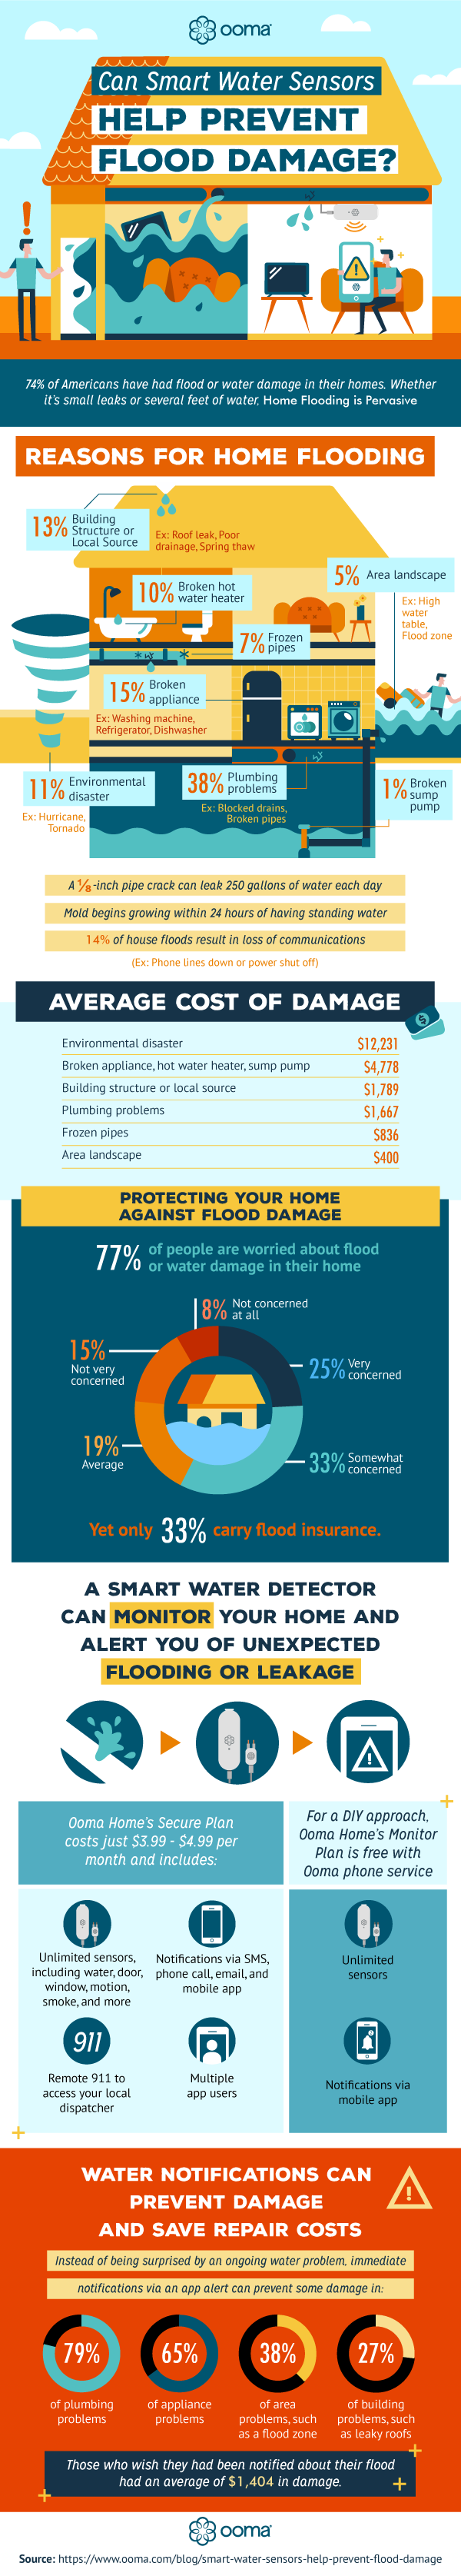 Can Smart Water Sensors Help Prevent Flood Damage? (With